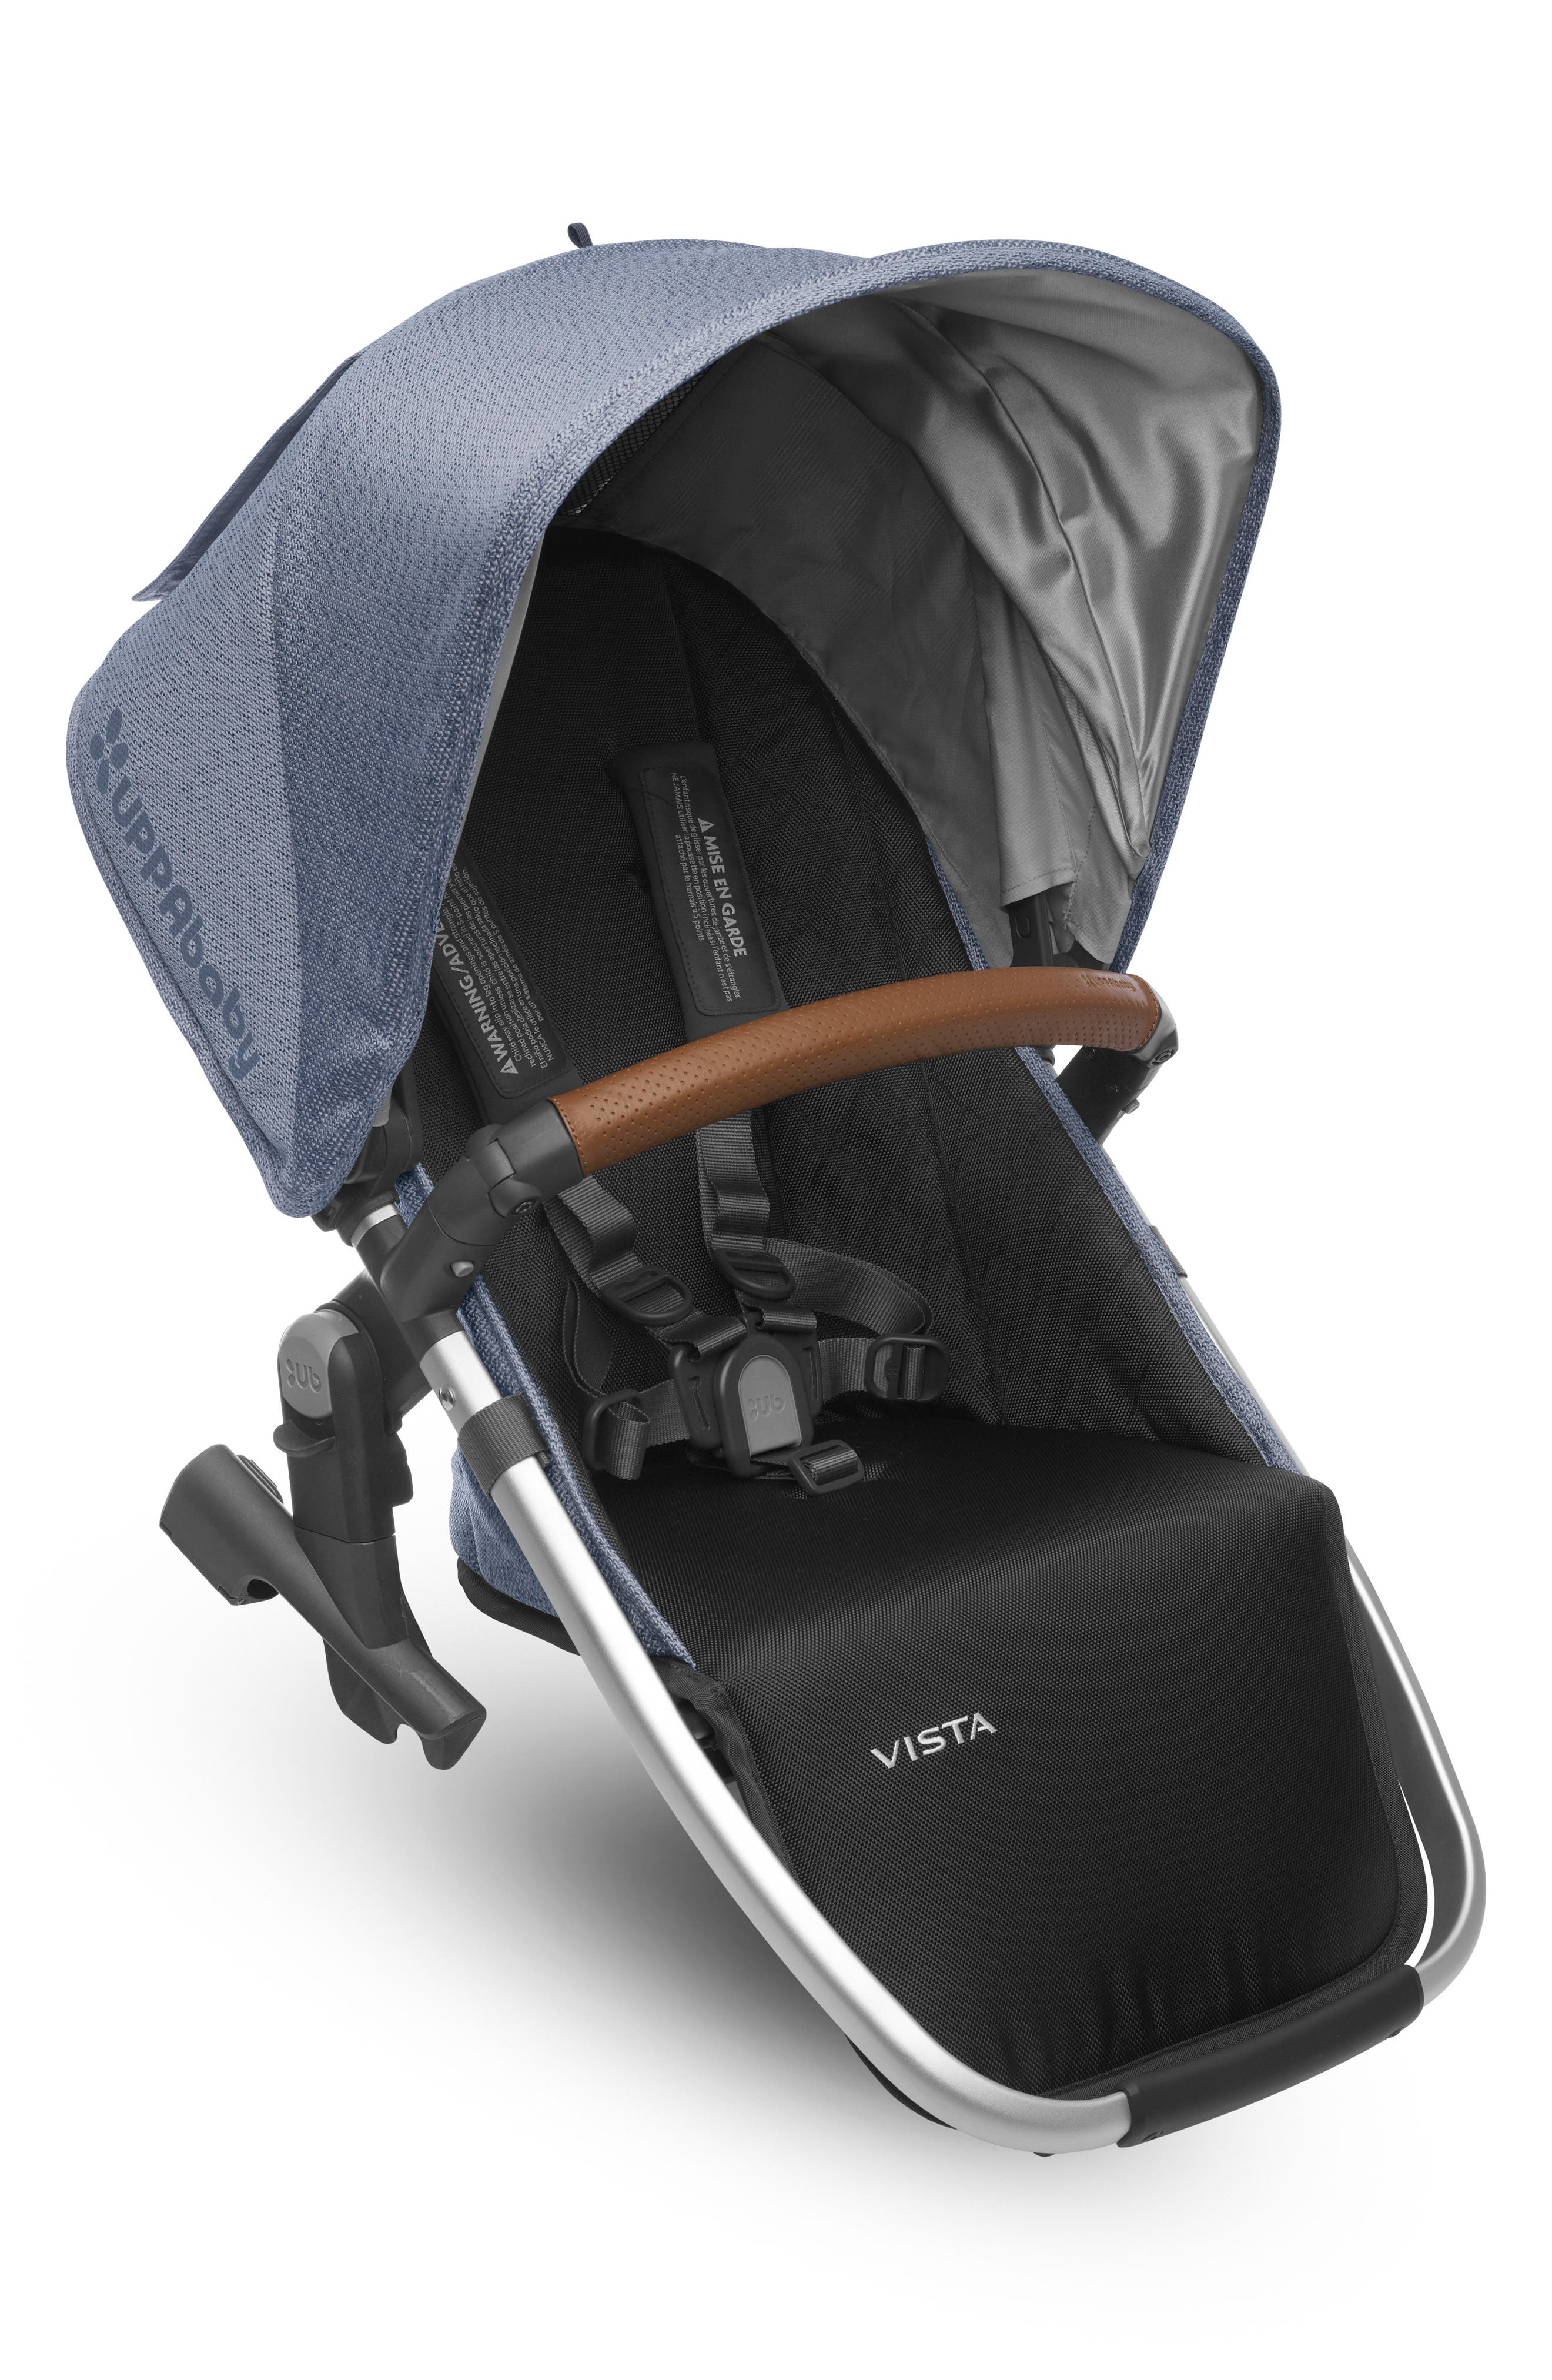 2017 Limited Edition Henry Rumble Seat for VISTA Stroller,                         Main,                         color, Blue Marl